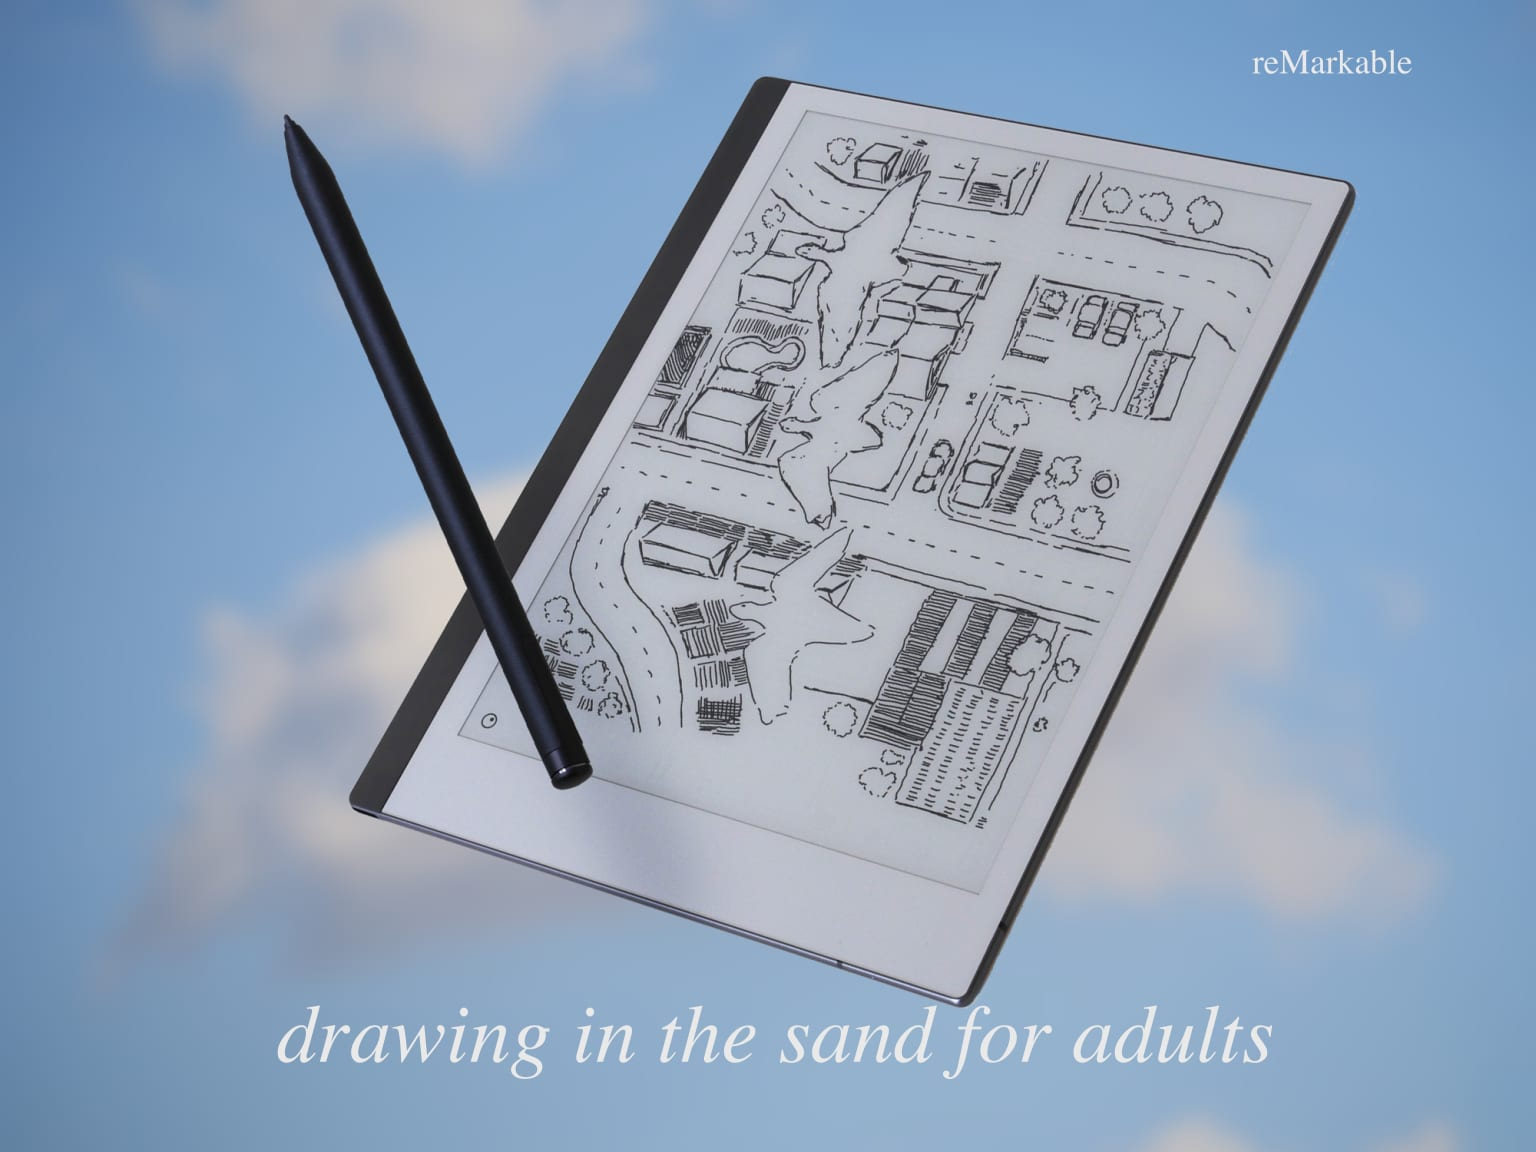 Drawing in the sand for adults